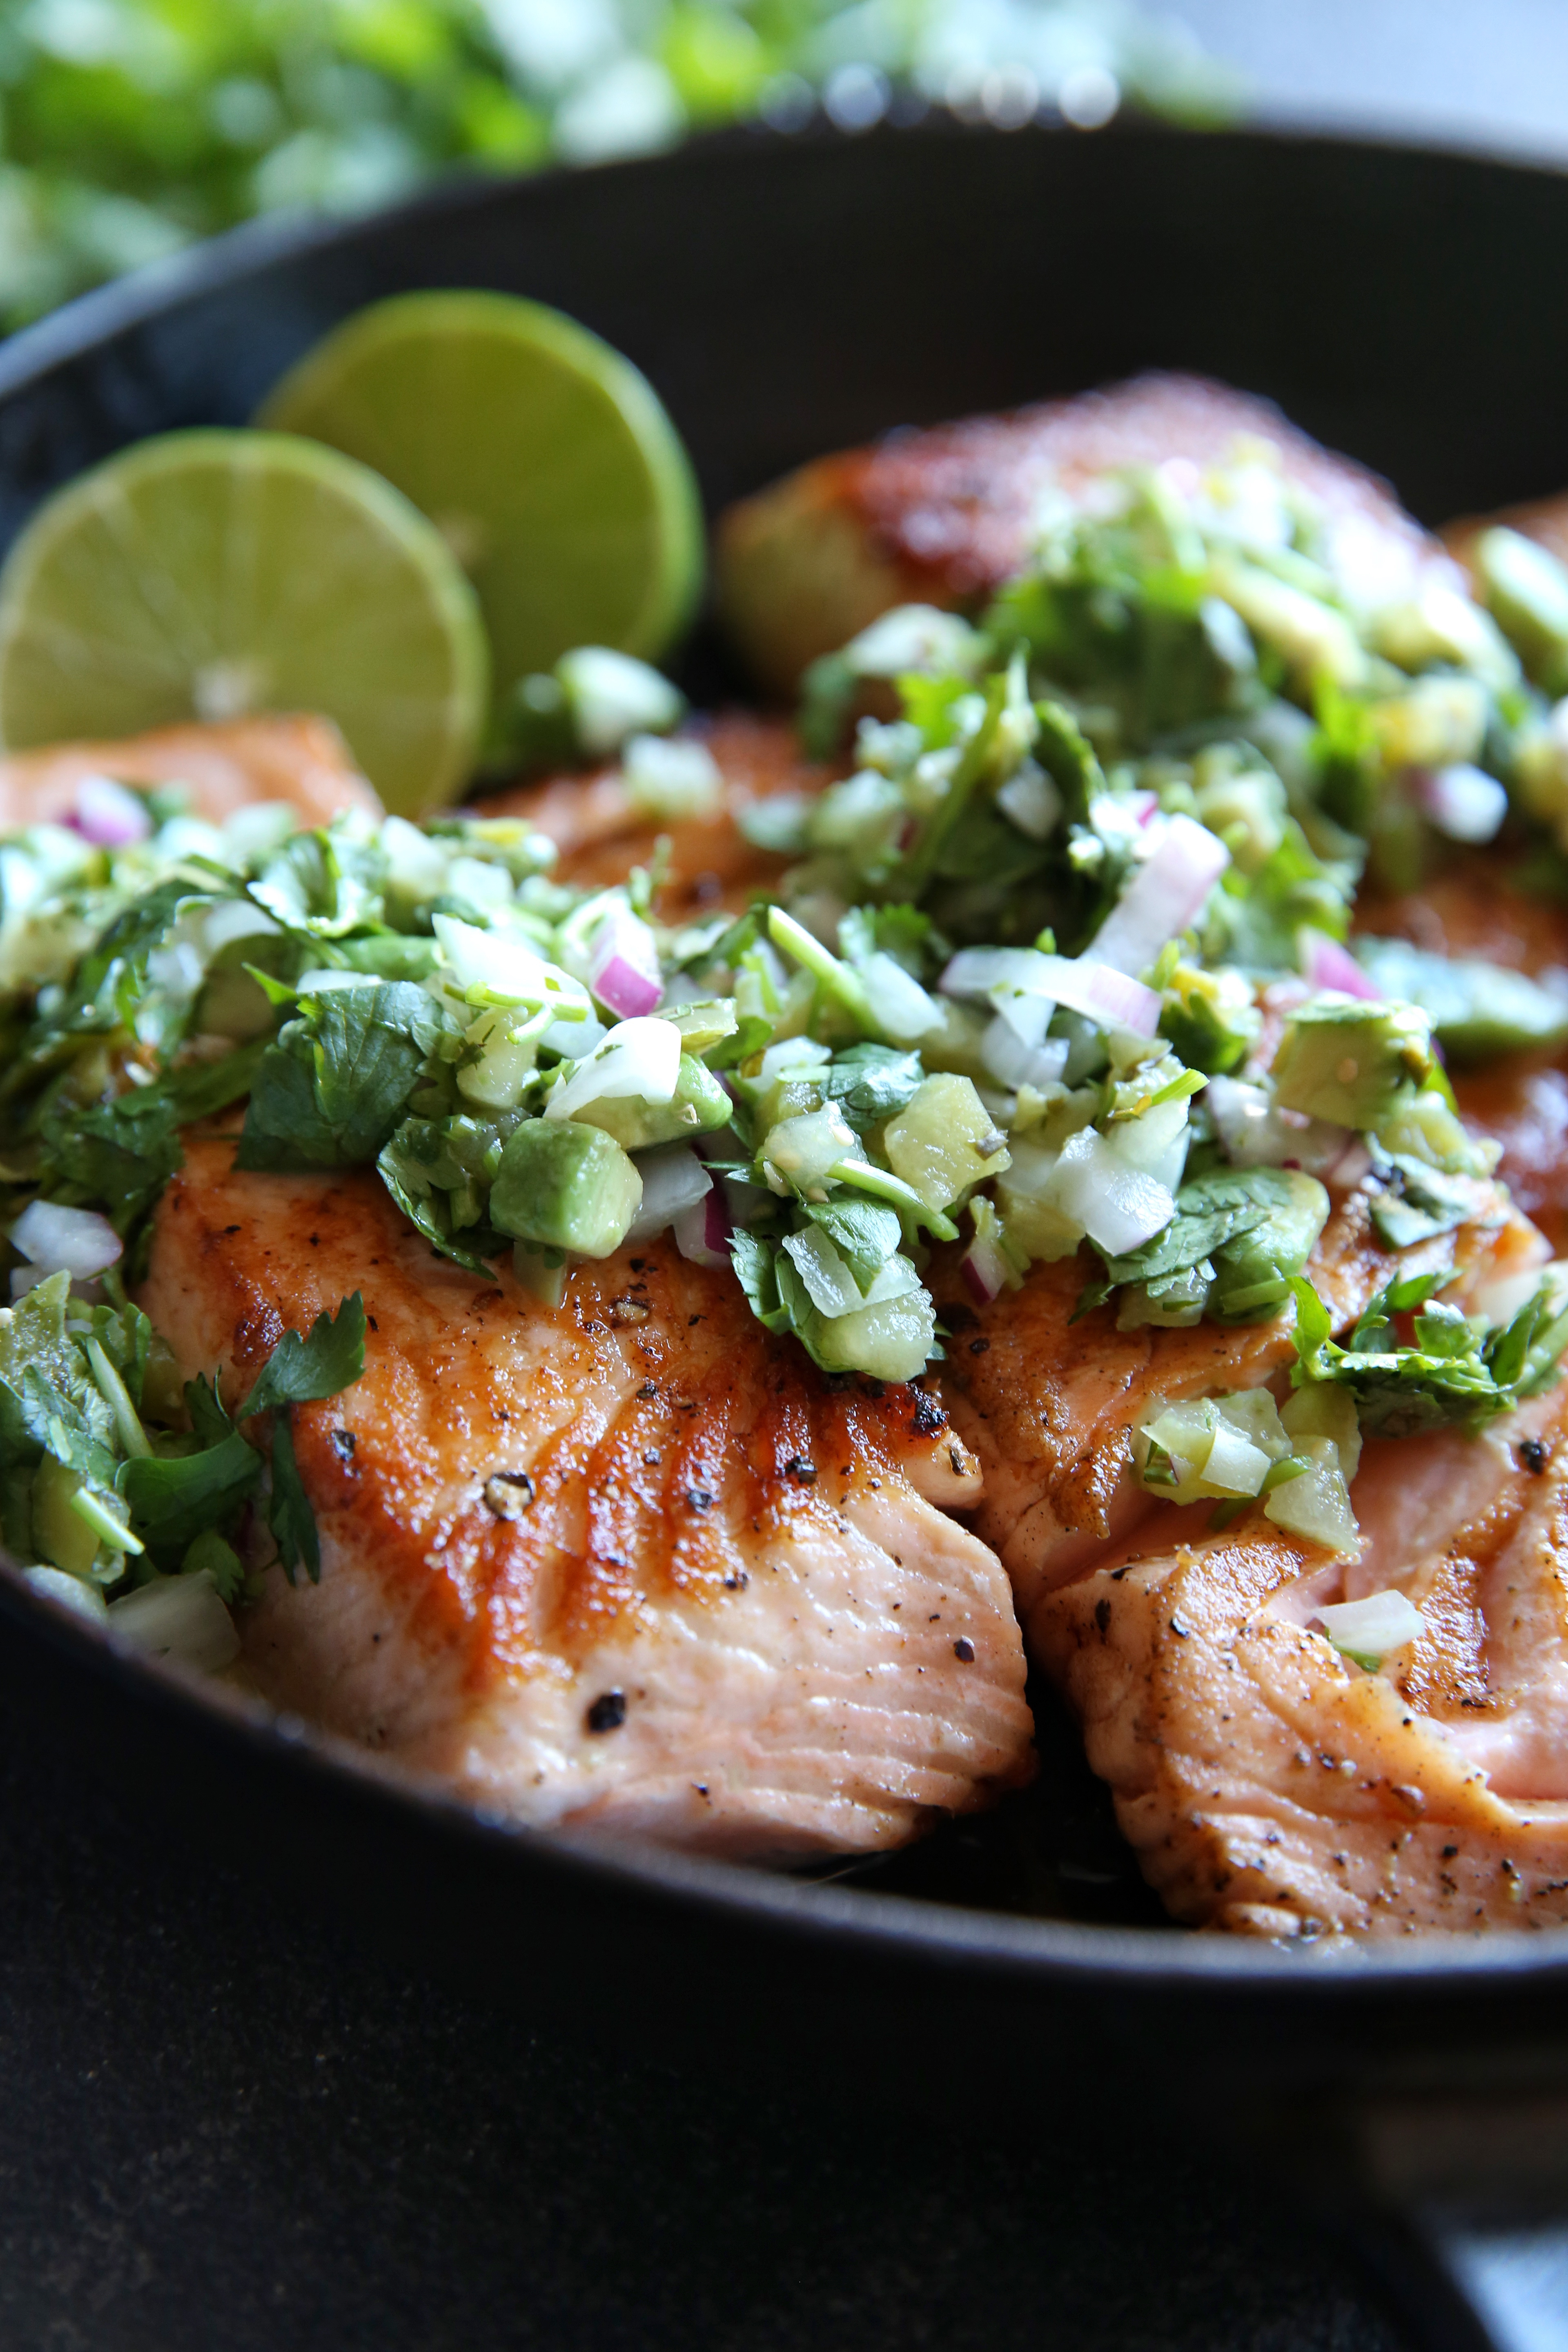 recipes dinner summer dinners recipe easy seafood fish cooking salsa verde salmon food avocado seared simple healthy delish